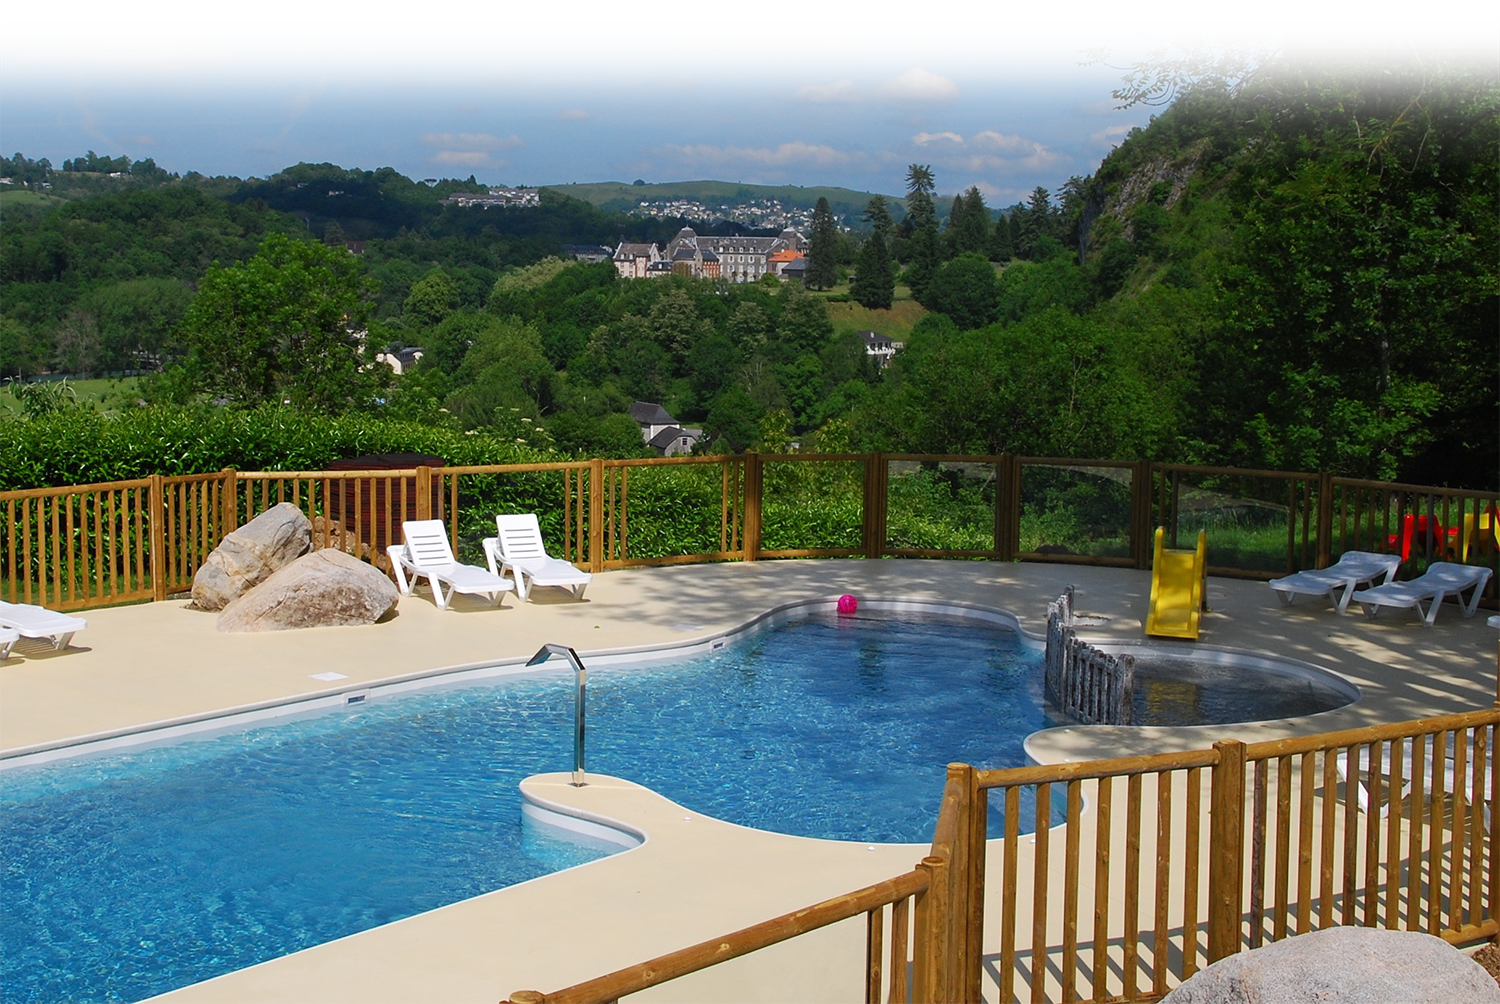 Campsite with heated swimming pool, panoramic view of the mountains, in Lourdes